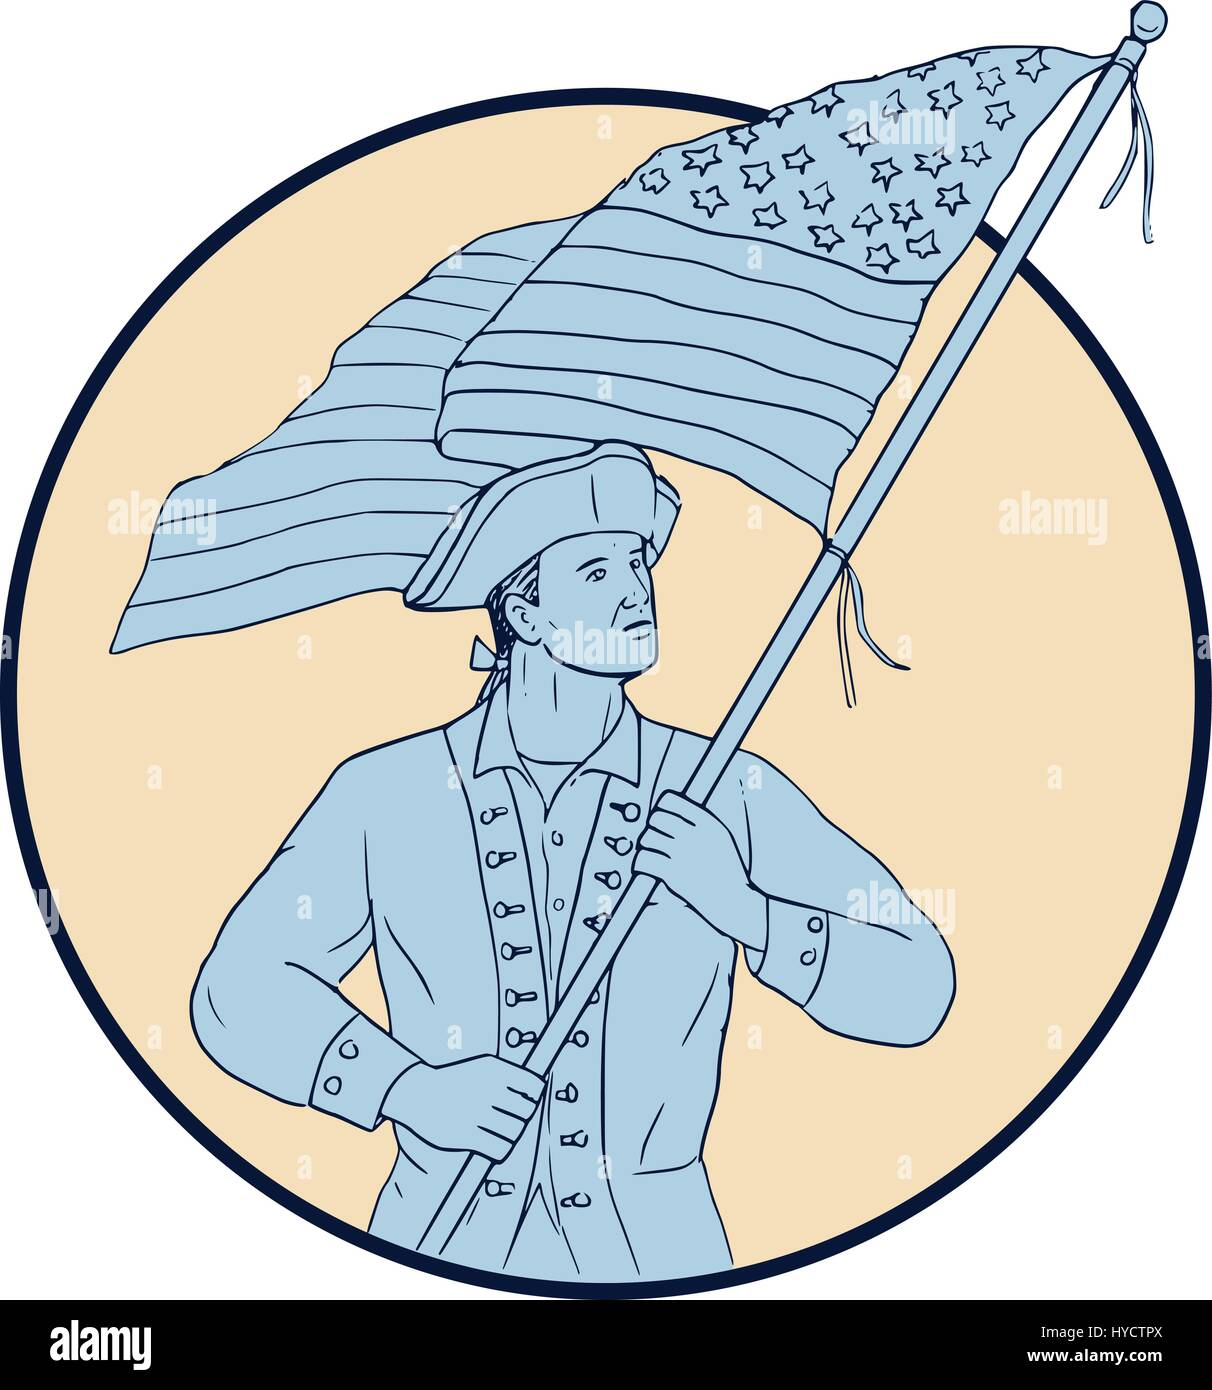 Drawing Sketch Style Illustration Of An American Patriot Carrying